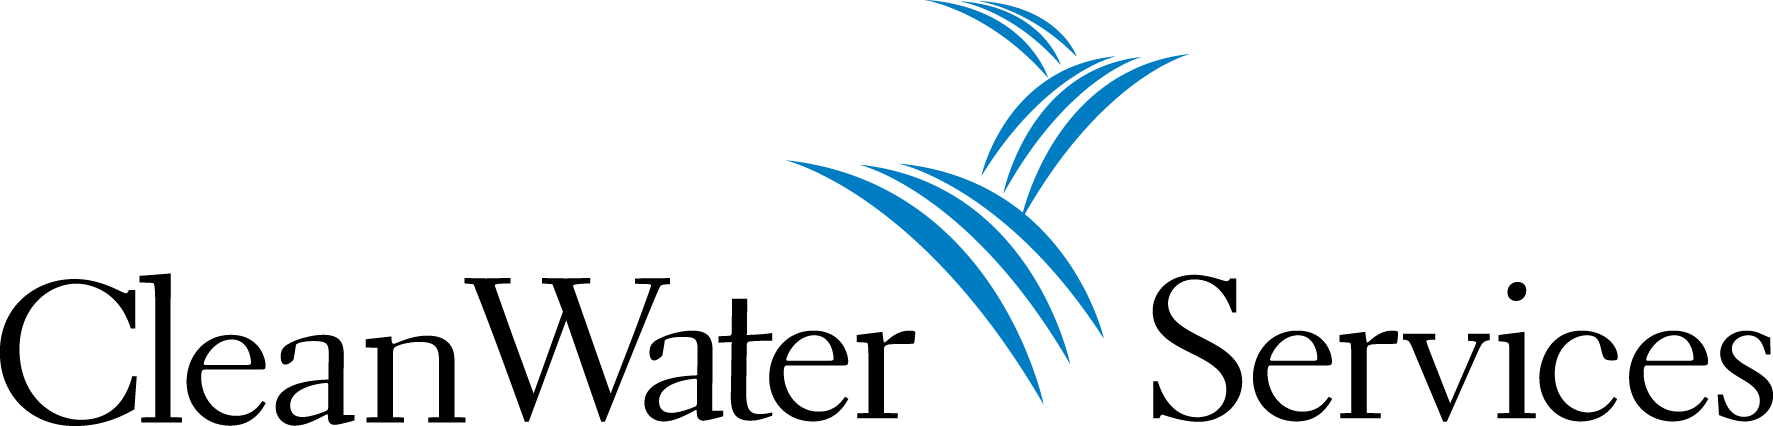 Clean Water Services Logo.png